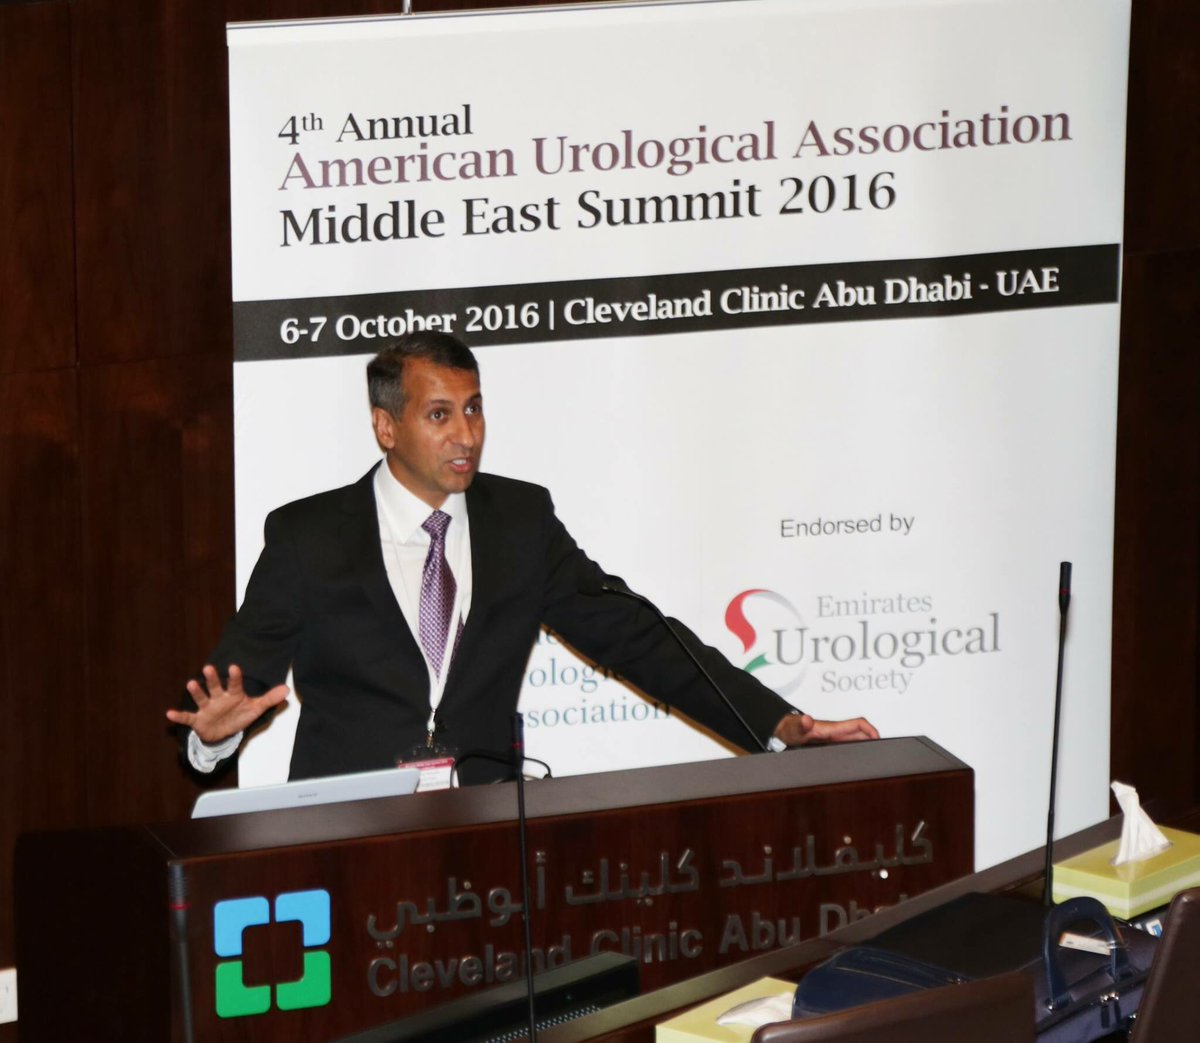 aua middleeastsummit auasummit twitter dr sandip vasavada talks about challenges in stress incontinence surgical therapy auamesummit urology ccad amerurological meetingmindspic twitter com